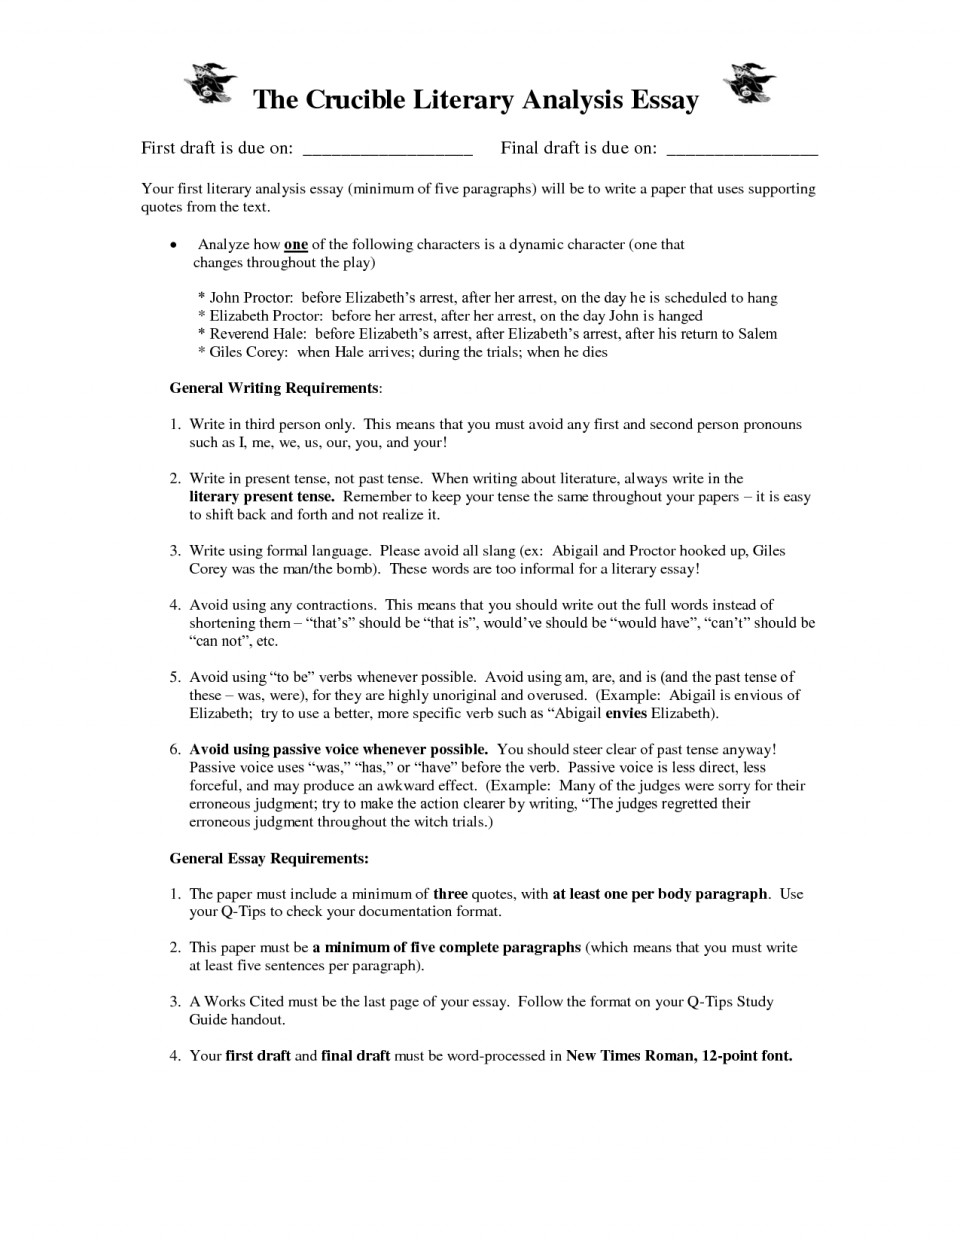 021 Essay Example Literary Essays Of The Crucible How Tote Step By Conclusion On Romeo And Juliet Introduction Do You Outline 4th Grade Analysis Pdf Formidable To Write A Good English Literature 4 960